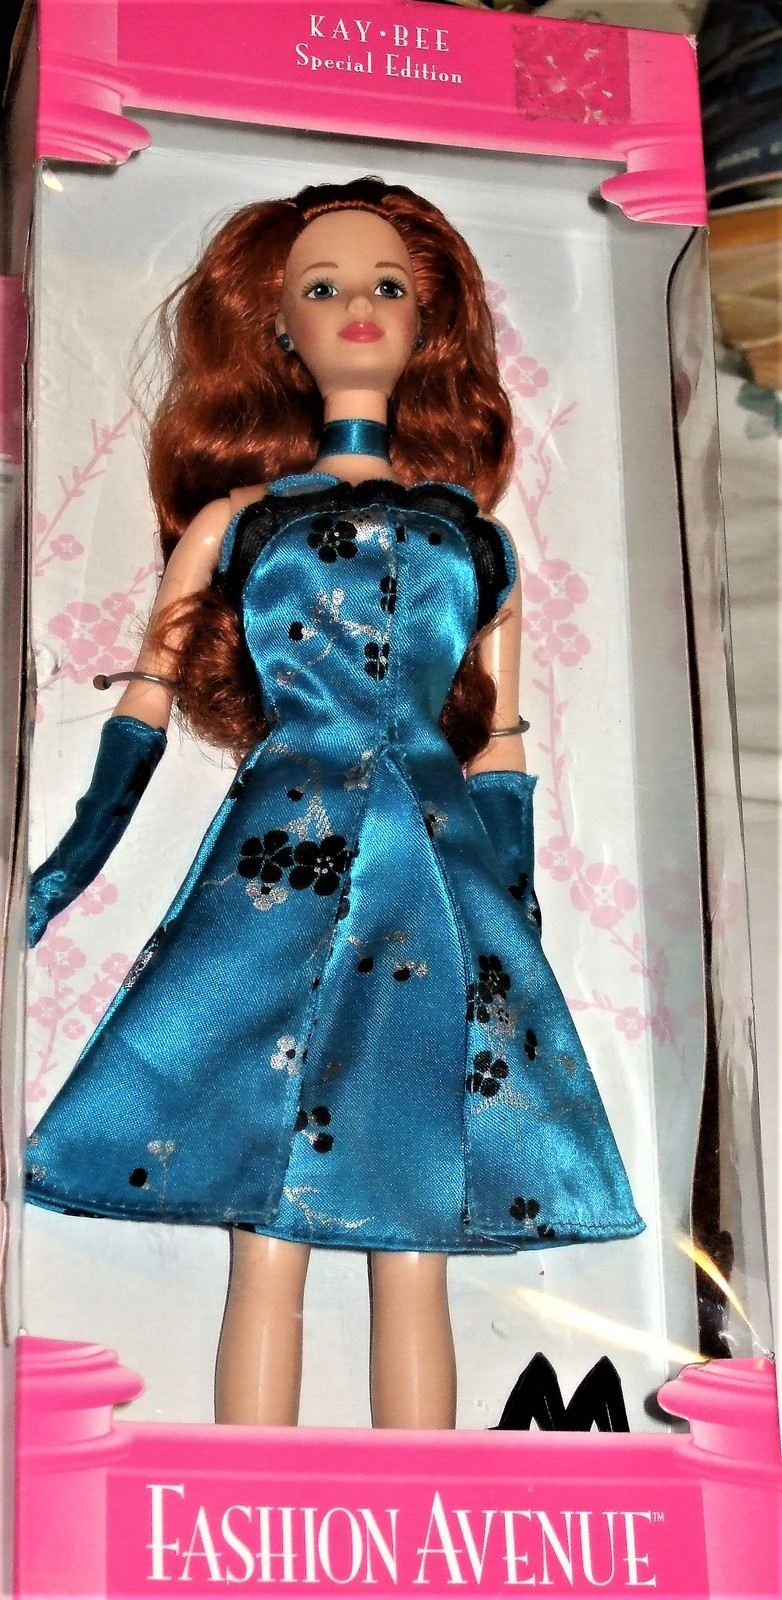 Barbie Doll - FASHION AVENUE Kay-Bee Special Ed (1998) Long Red Hair image 8